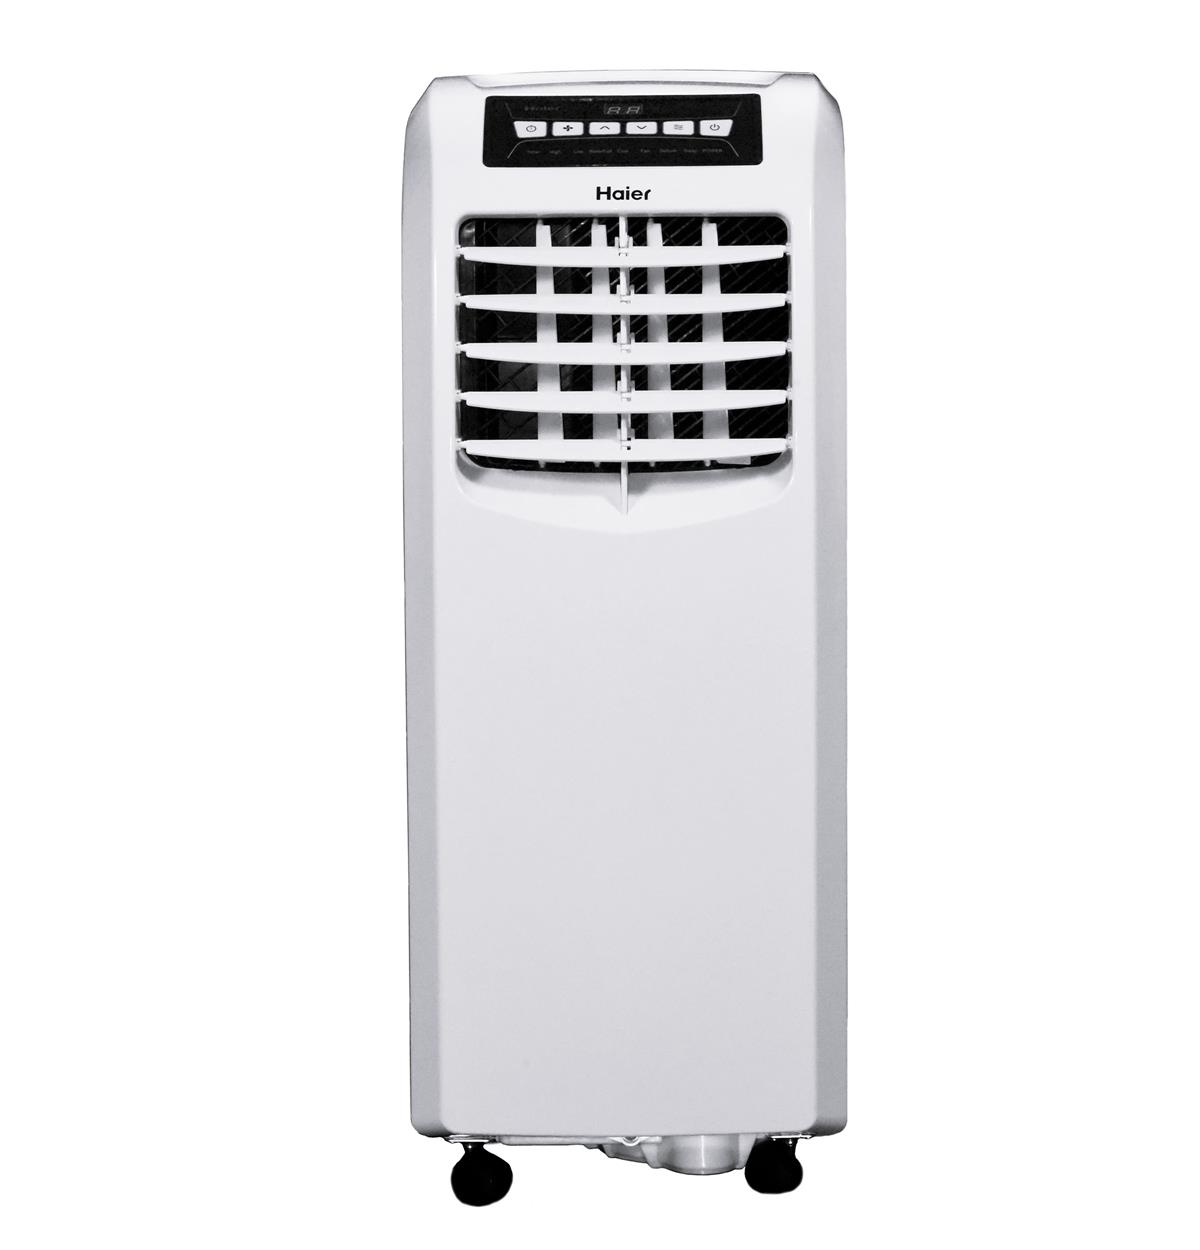 Qpcd08axlw Portable Air Conditioner Haier Appliances